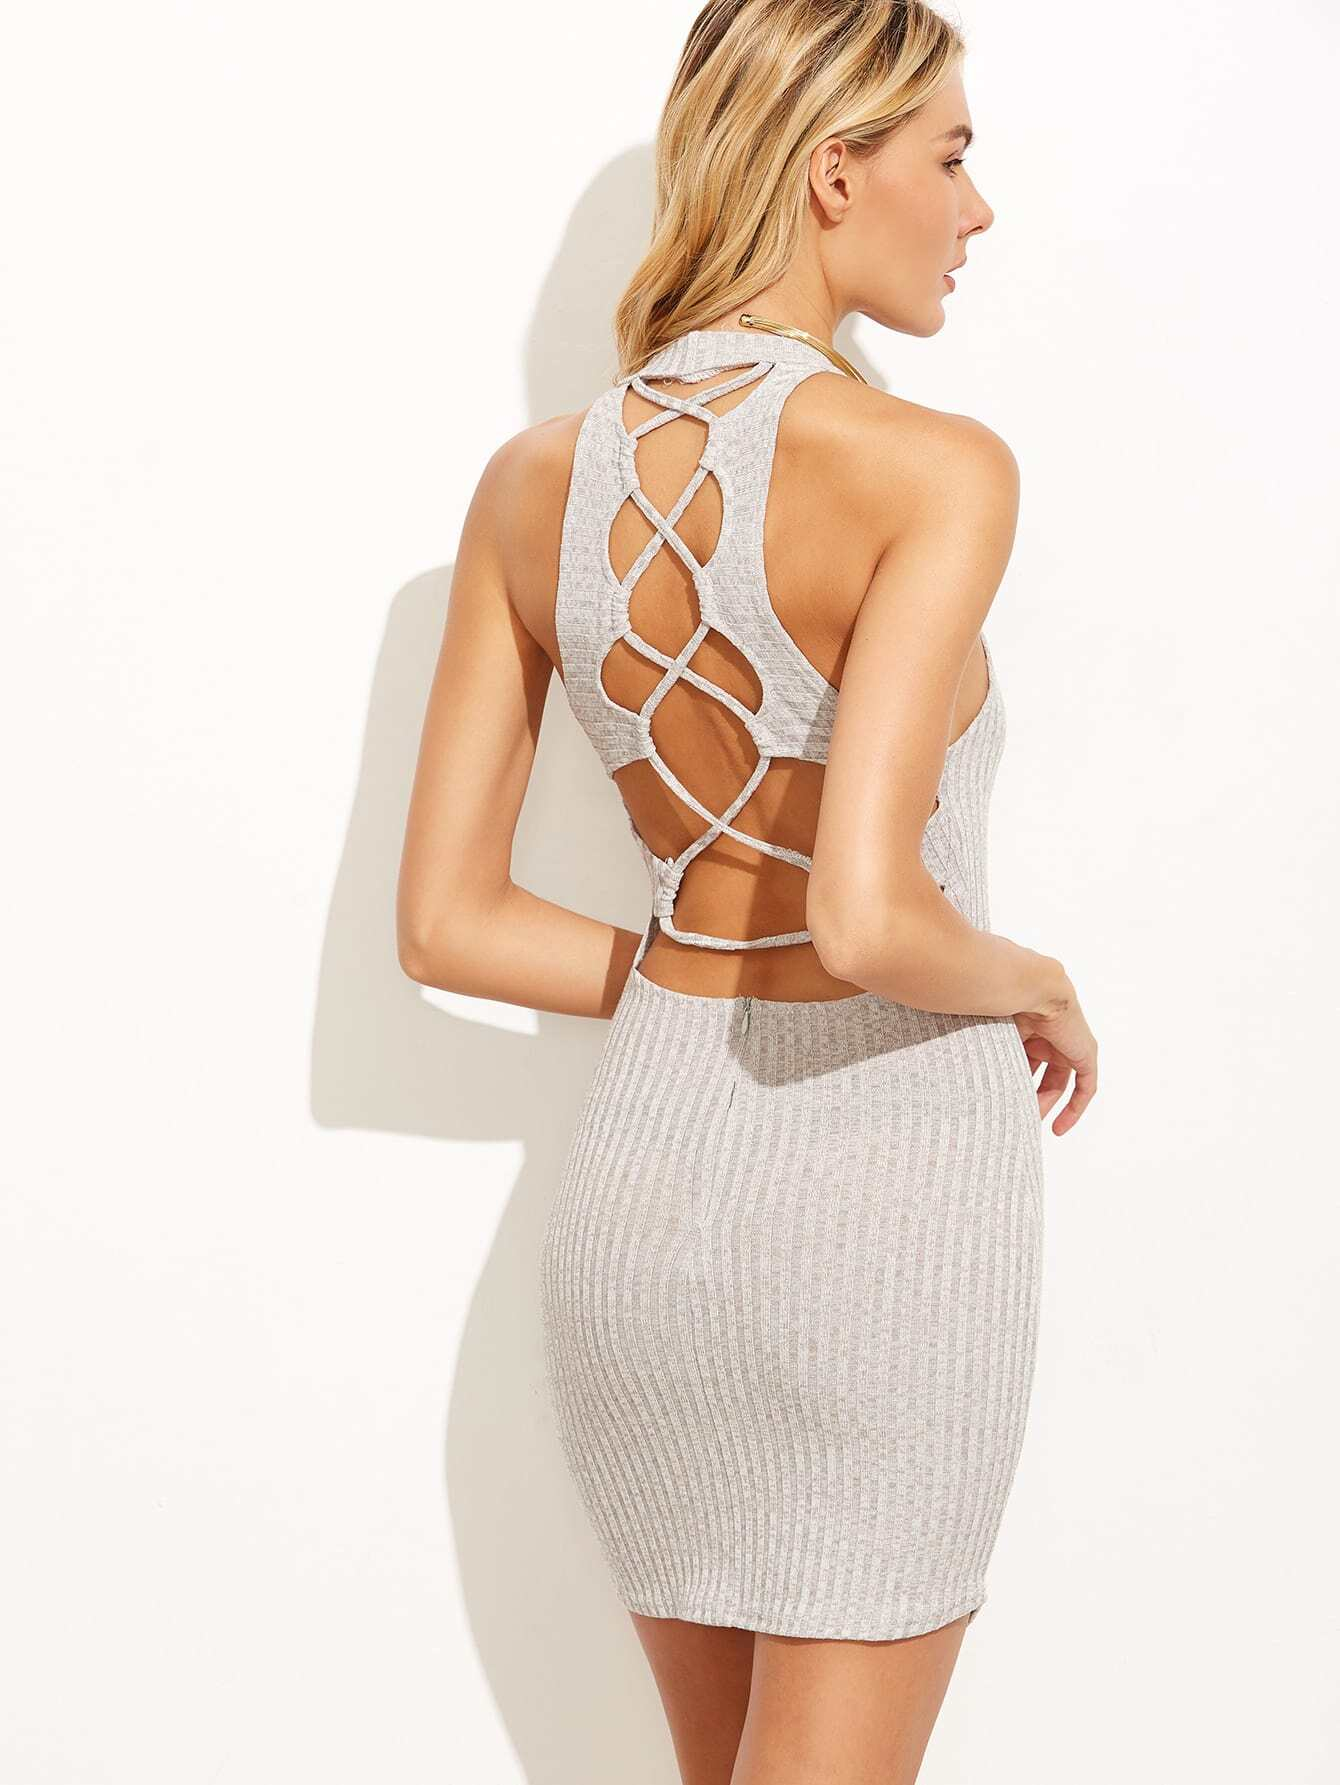 Grey Caged Back Ribbed Bodycon Dress With Zipper dress160819304